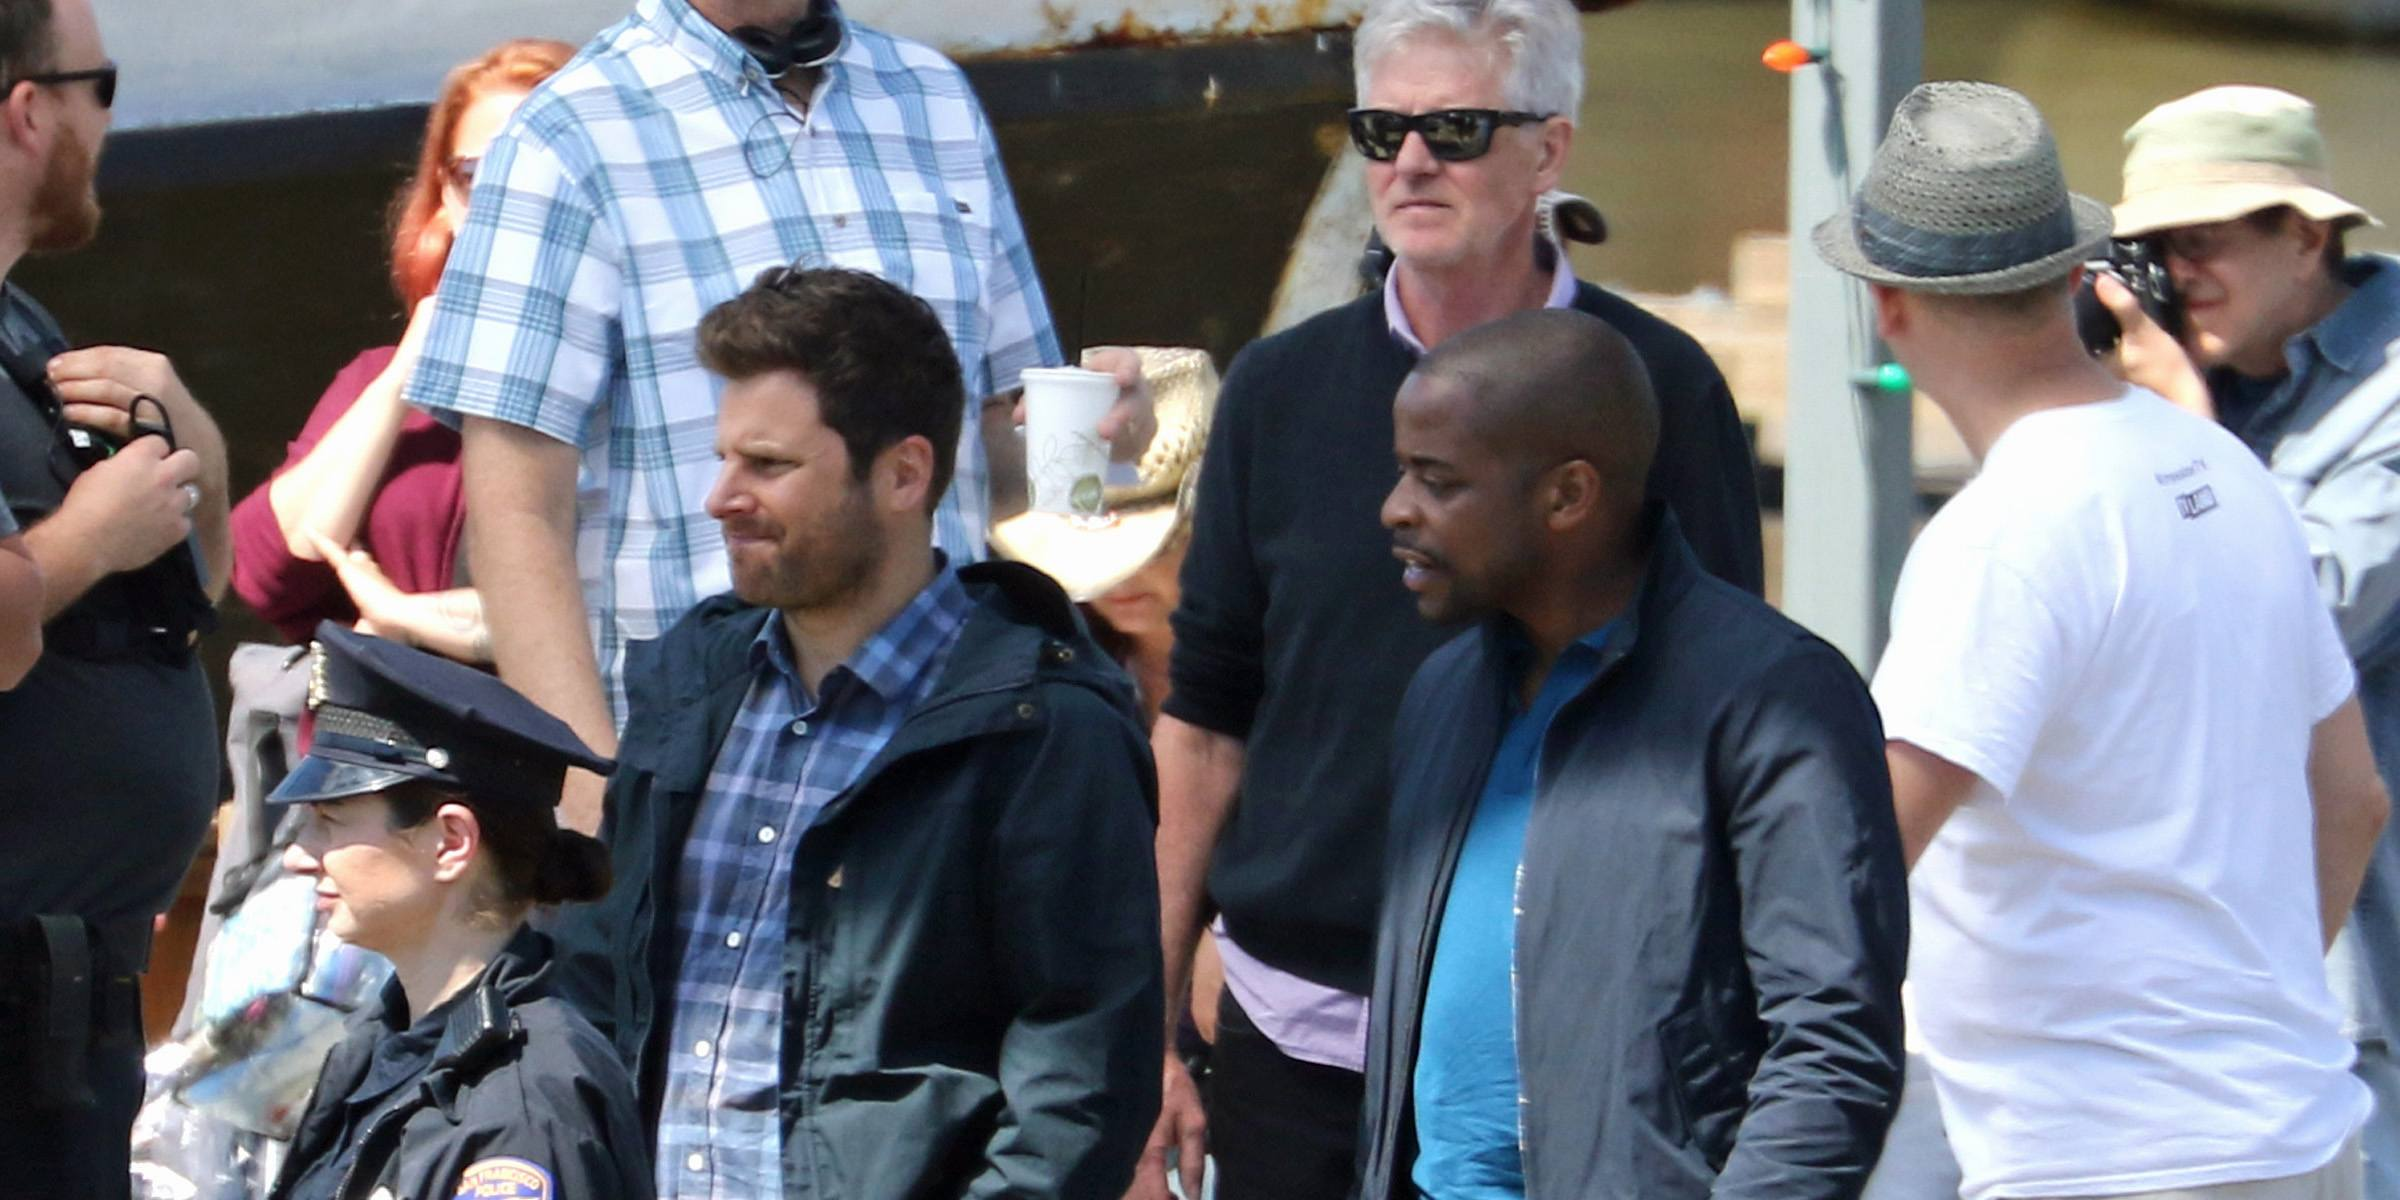 'Psych the Movie' filming in Vancouver (PHOTOS)